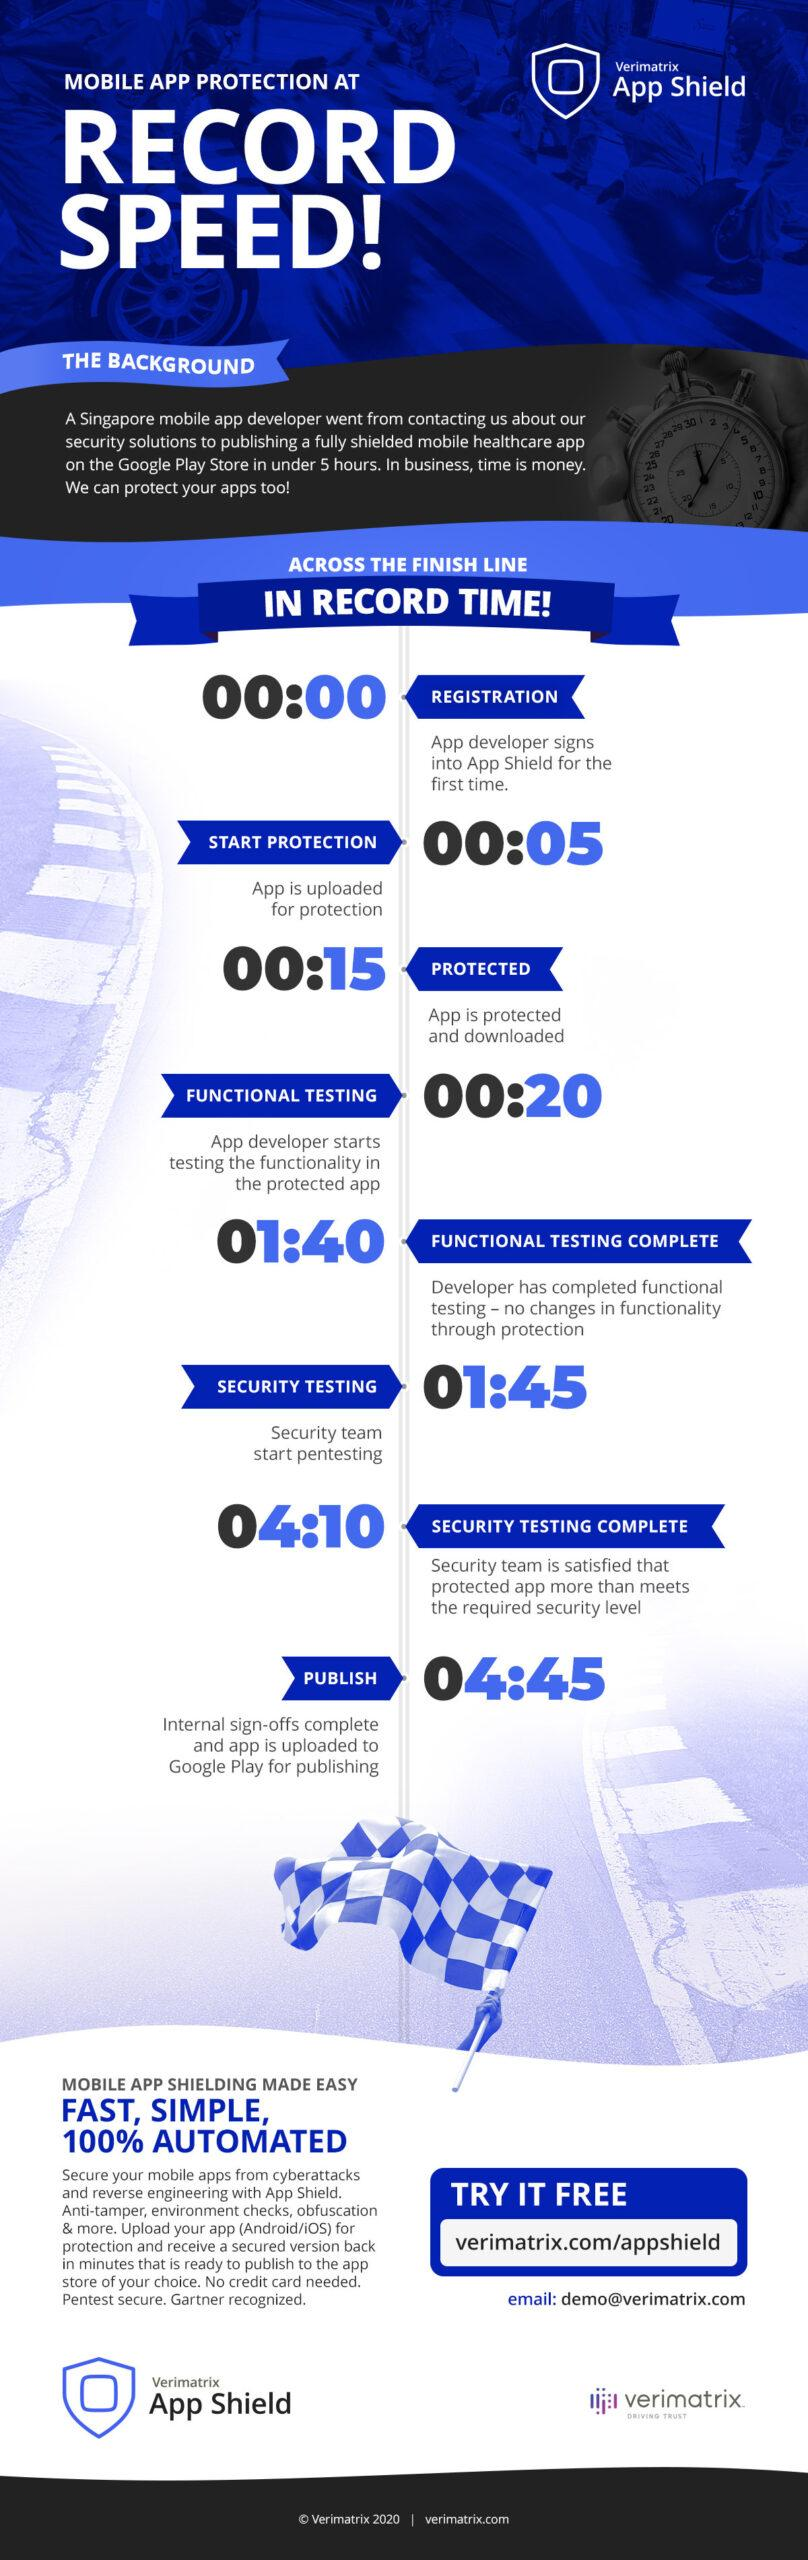 Infographic depicting the speed Verimatrix App Shield can protect technology